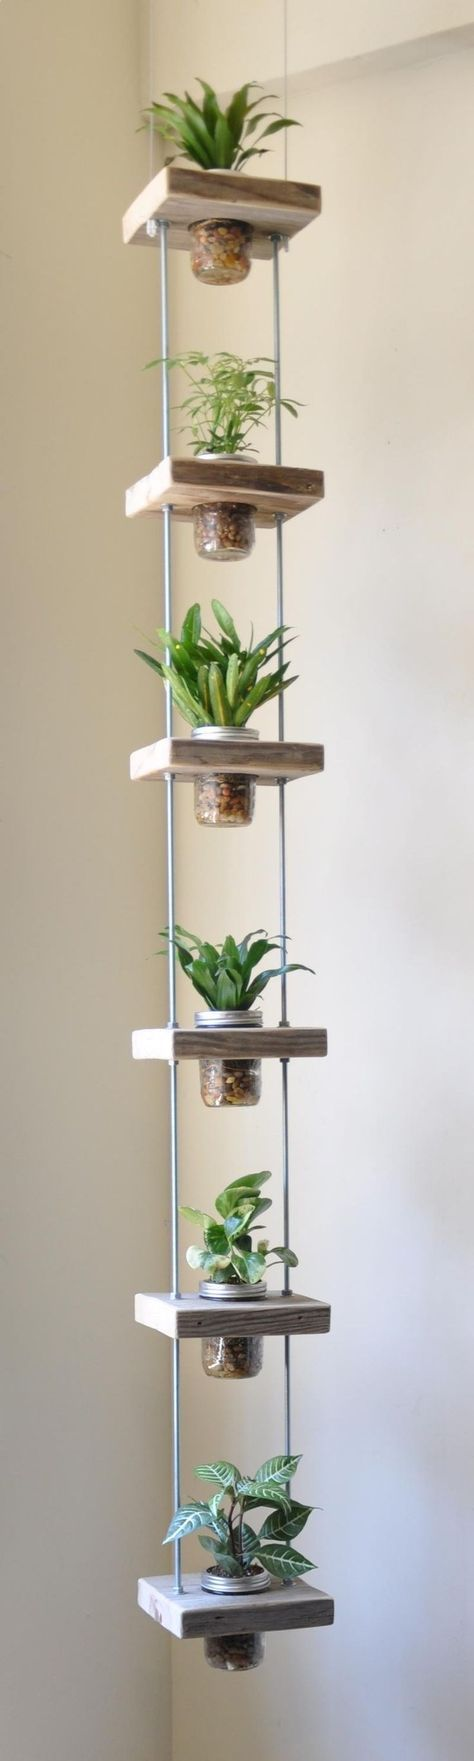 1129419031297993329063 Dont have much space to grow your favorite plants? Try building a vertical garden like this one, designed by Susie Frazier. Using salvaged wood, threaded rods and bolts, and a handful of mason jars, you can construct a simple hanging planter to add a lot of green to your game. See original article for instructions.